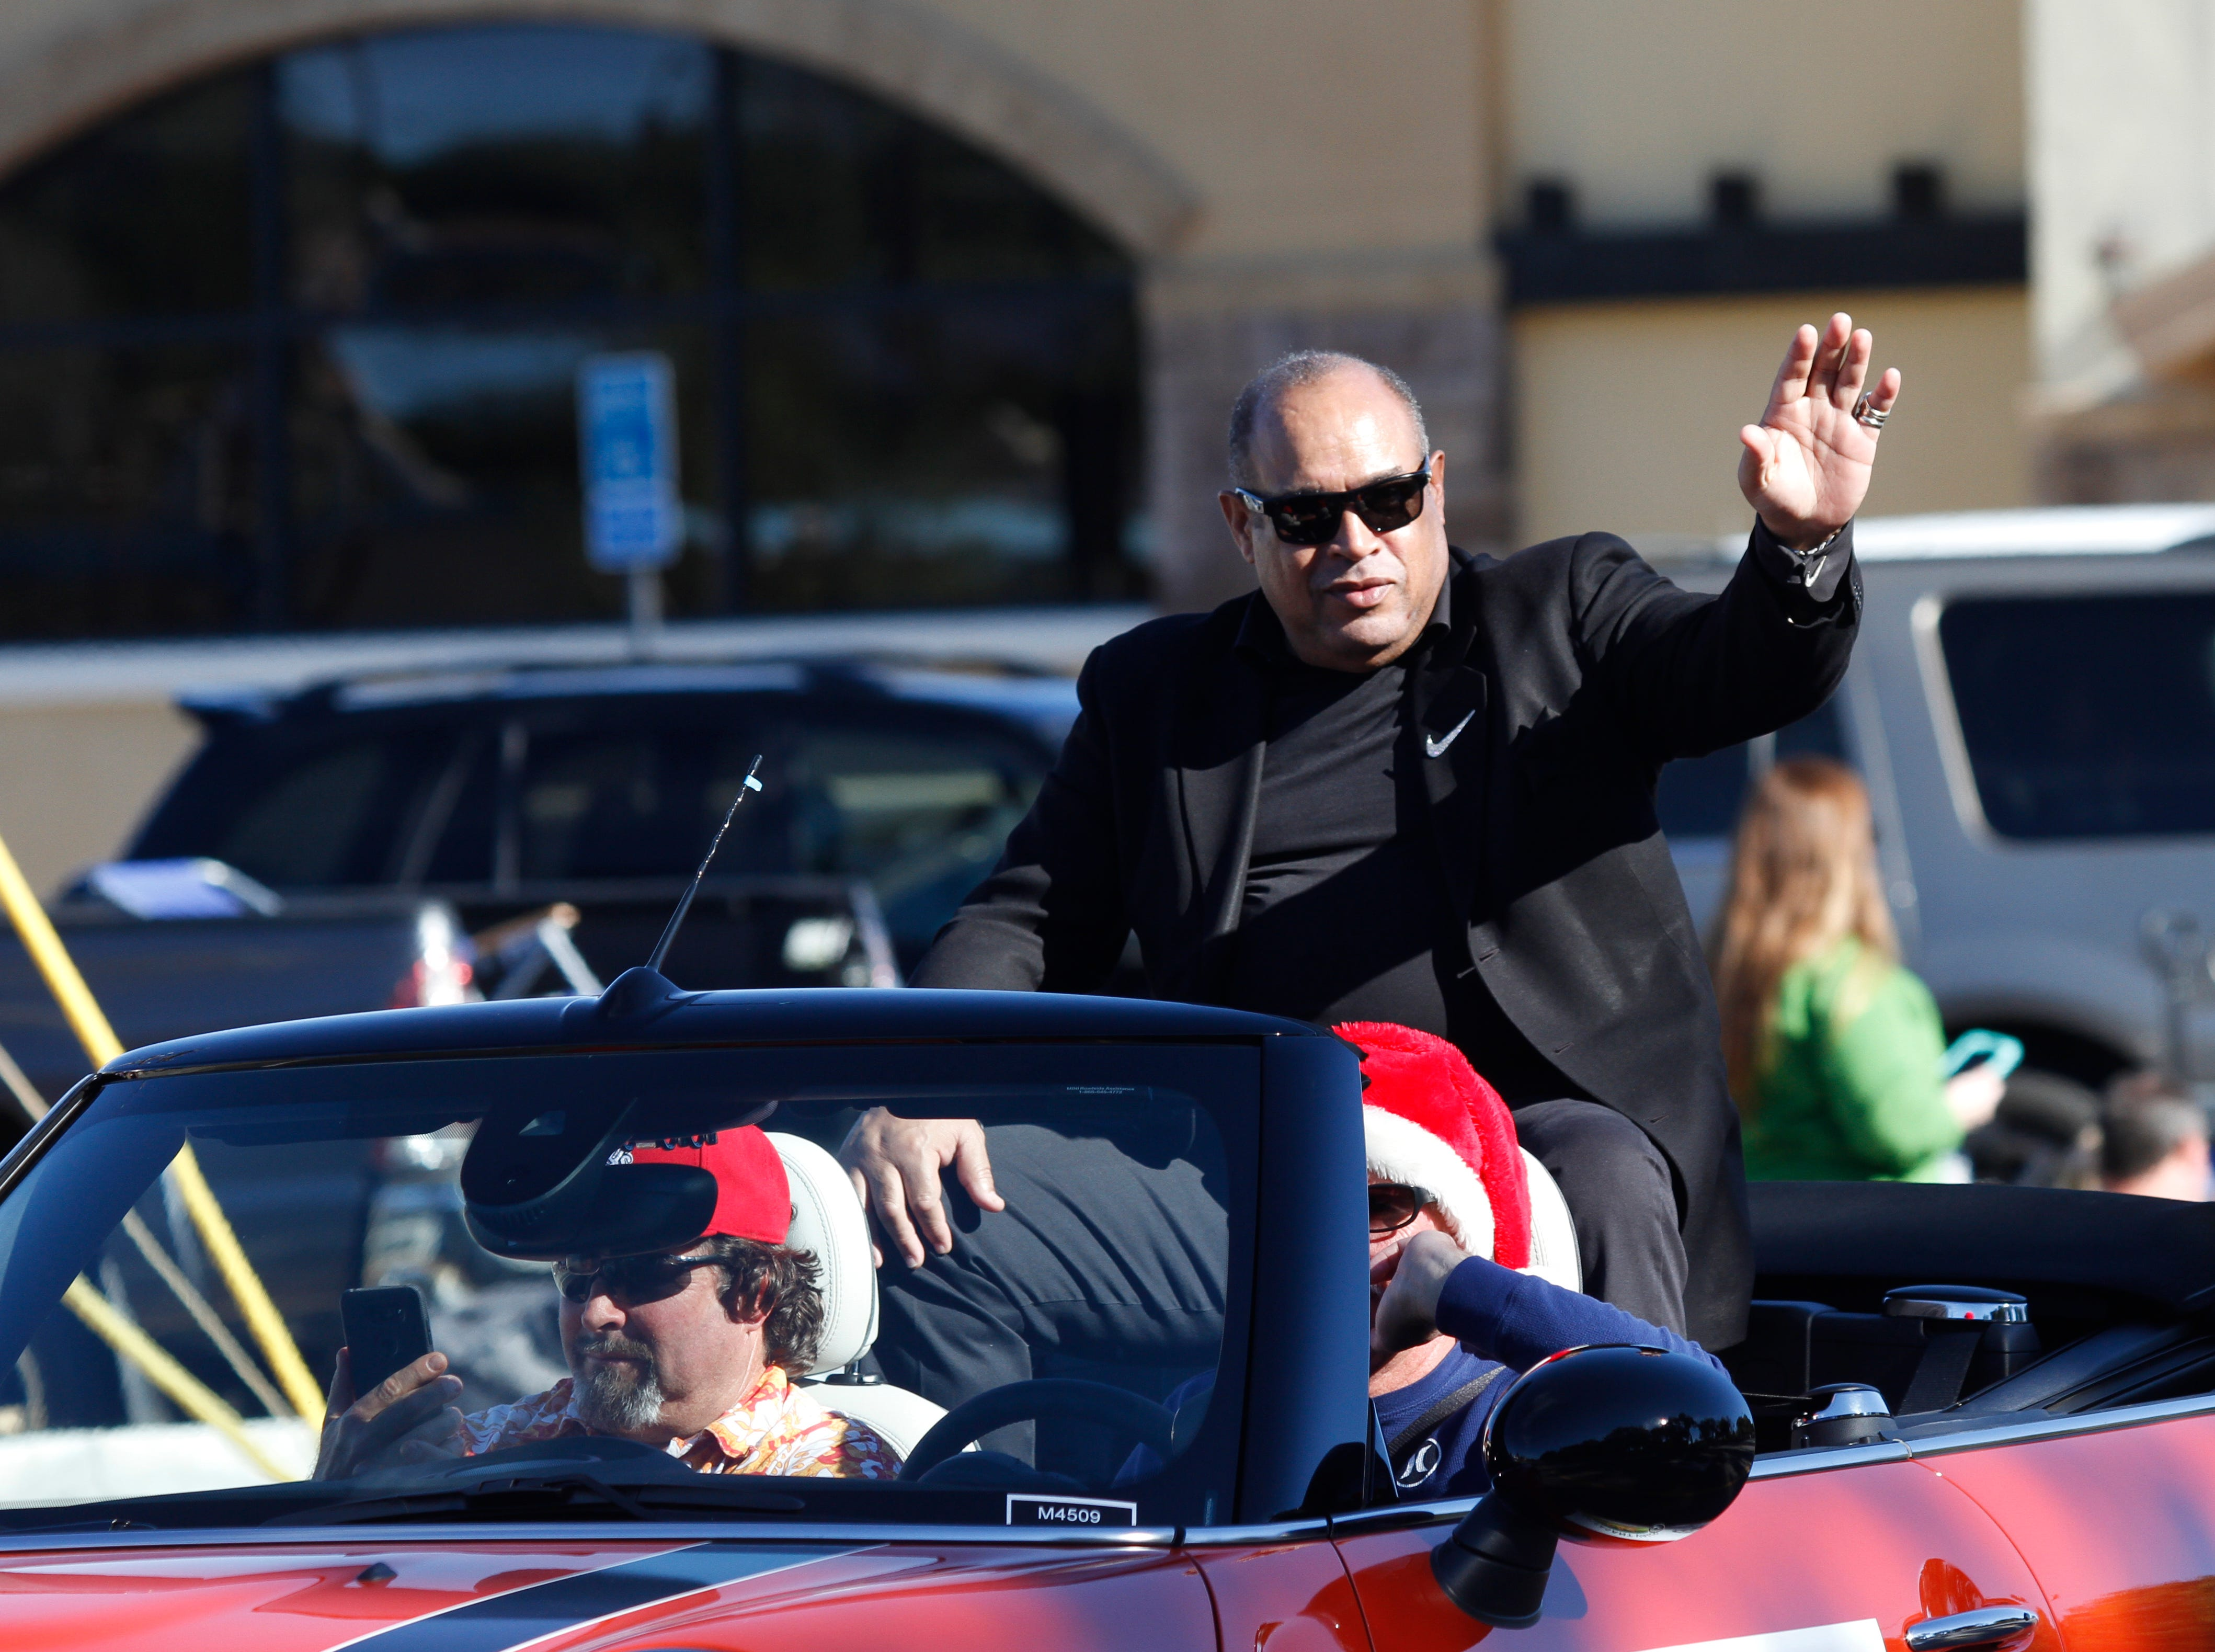 The grand marshal of the Camarillo Christmas parade, Anthony Davis, former USC star and NFL player, waves to the crowd on Saturday.